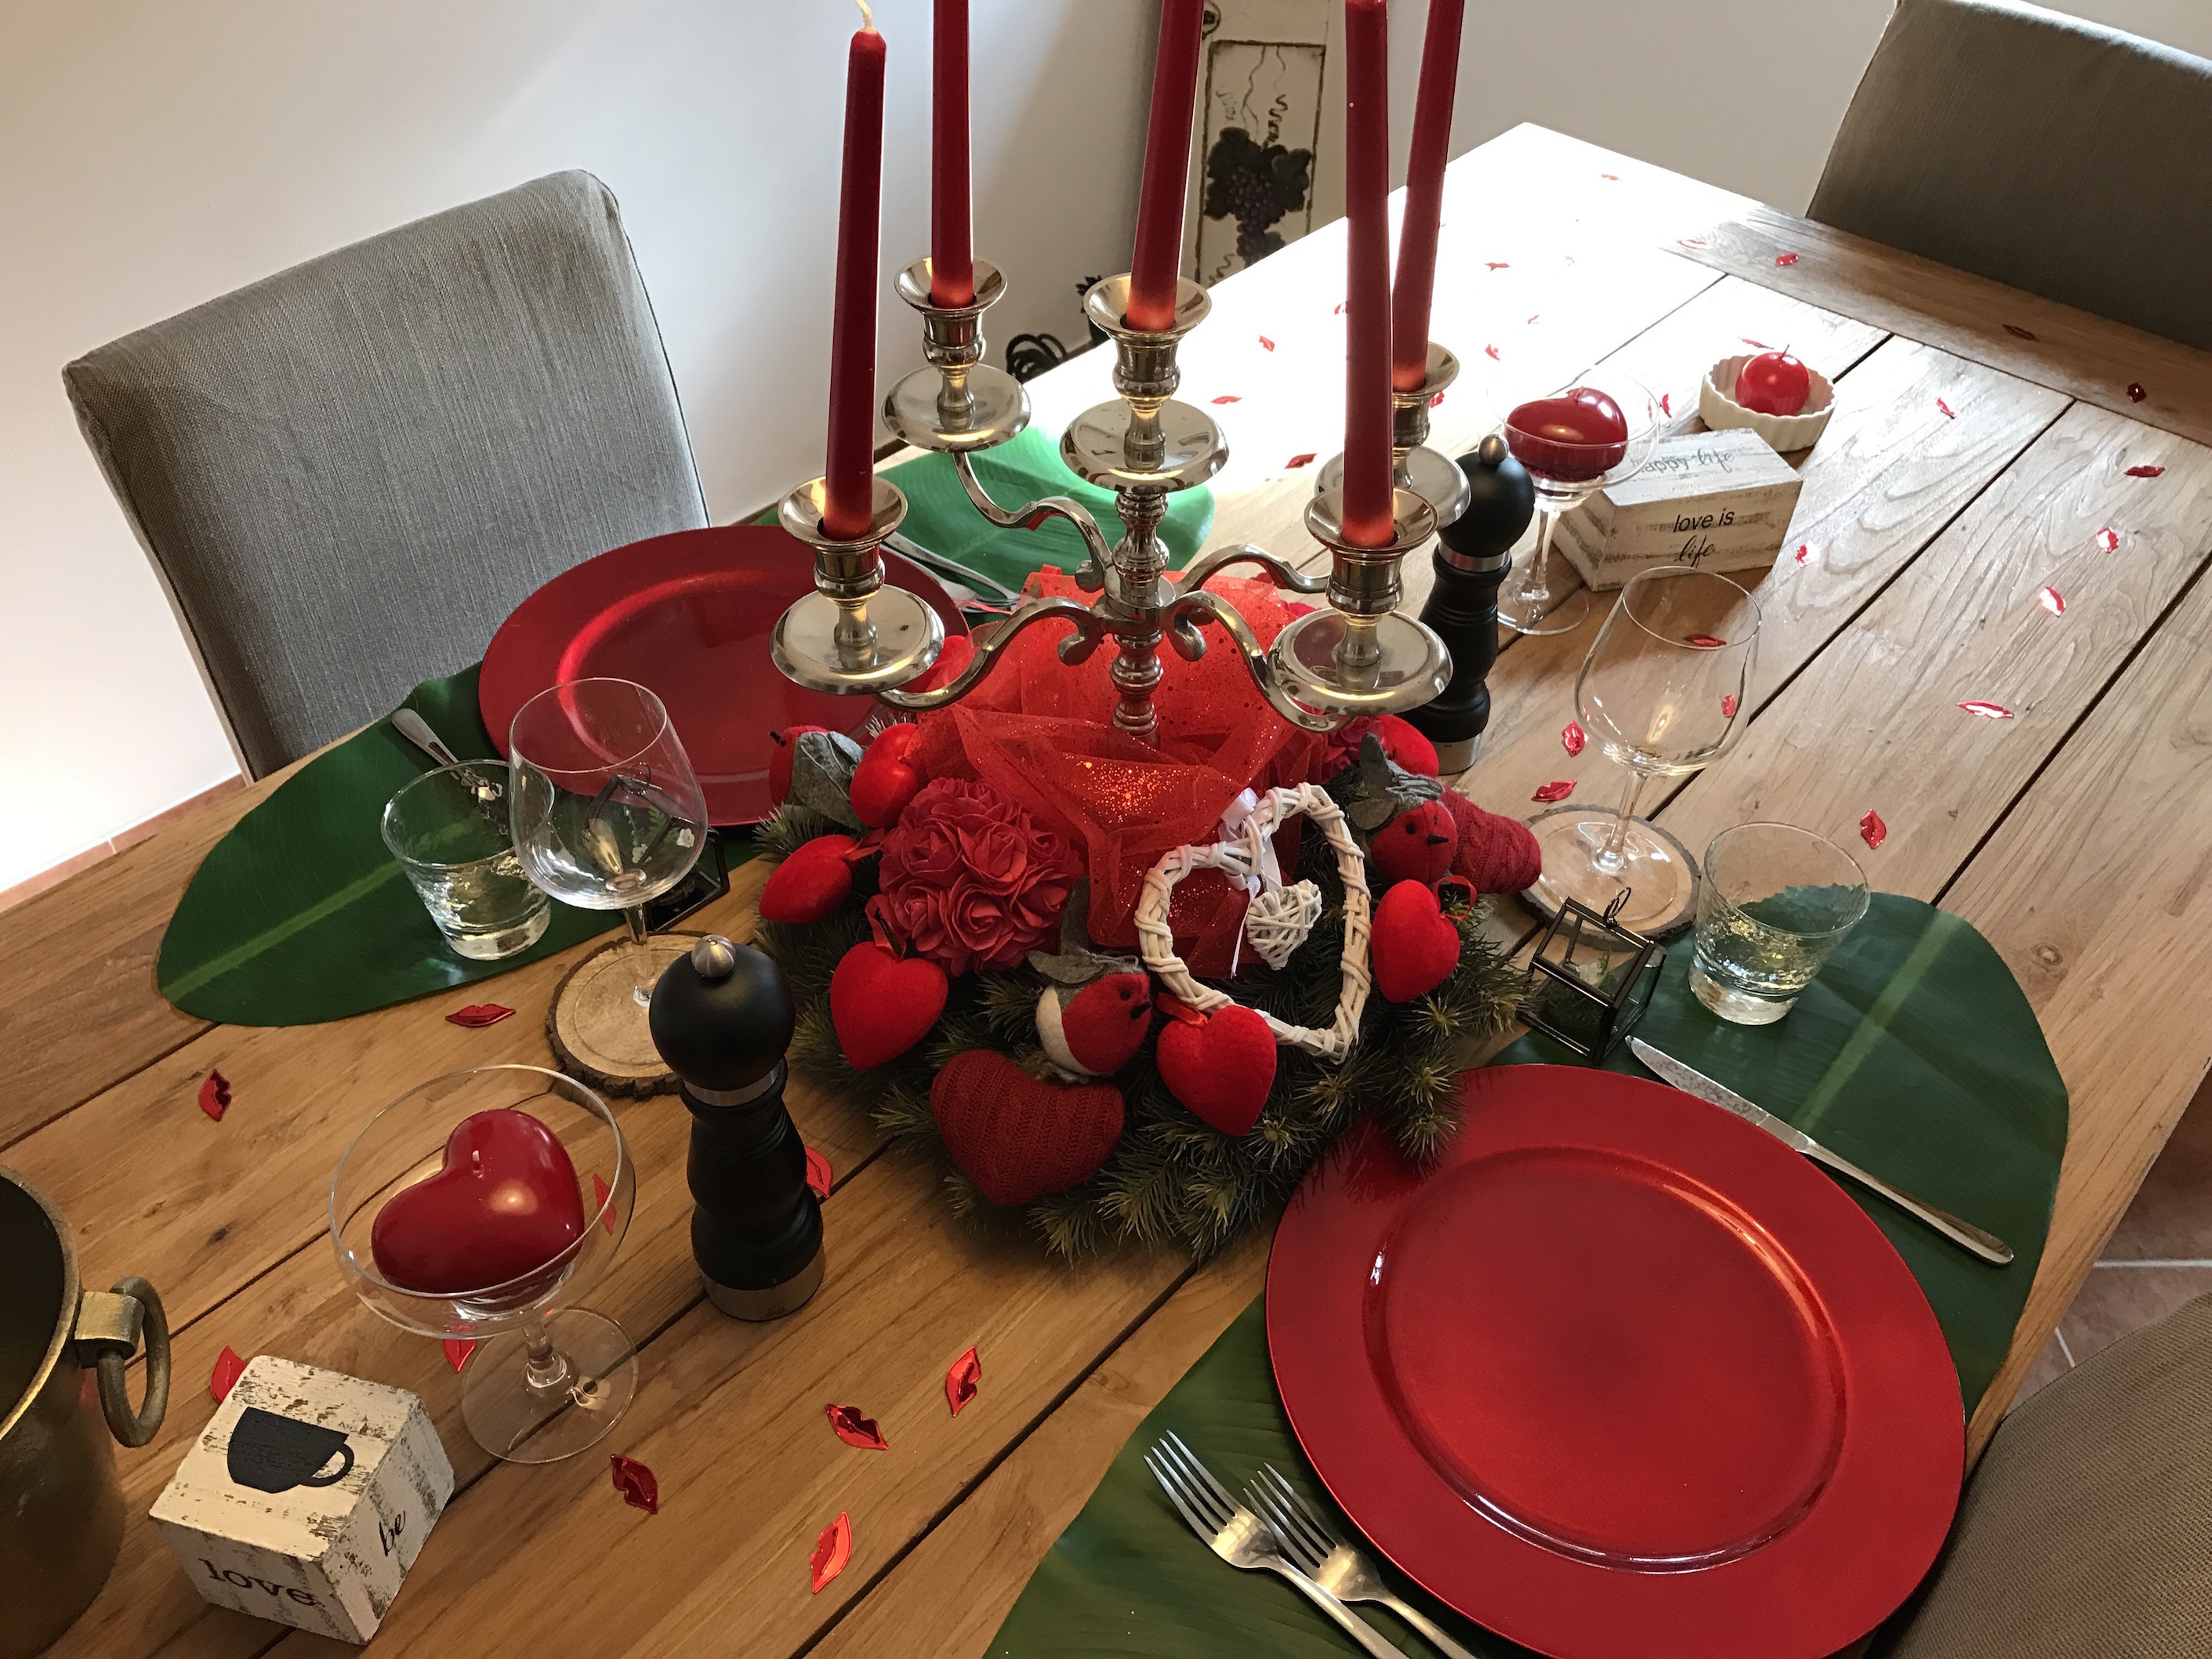 Create your own private Romantic dinner and evening for two